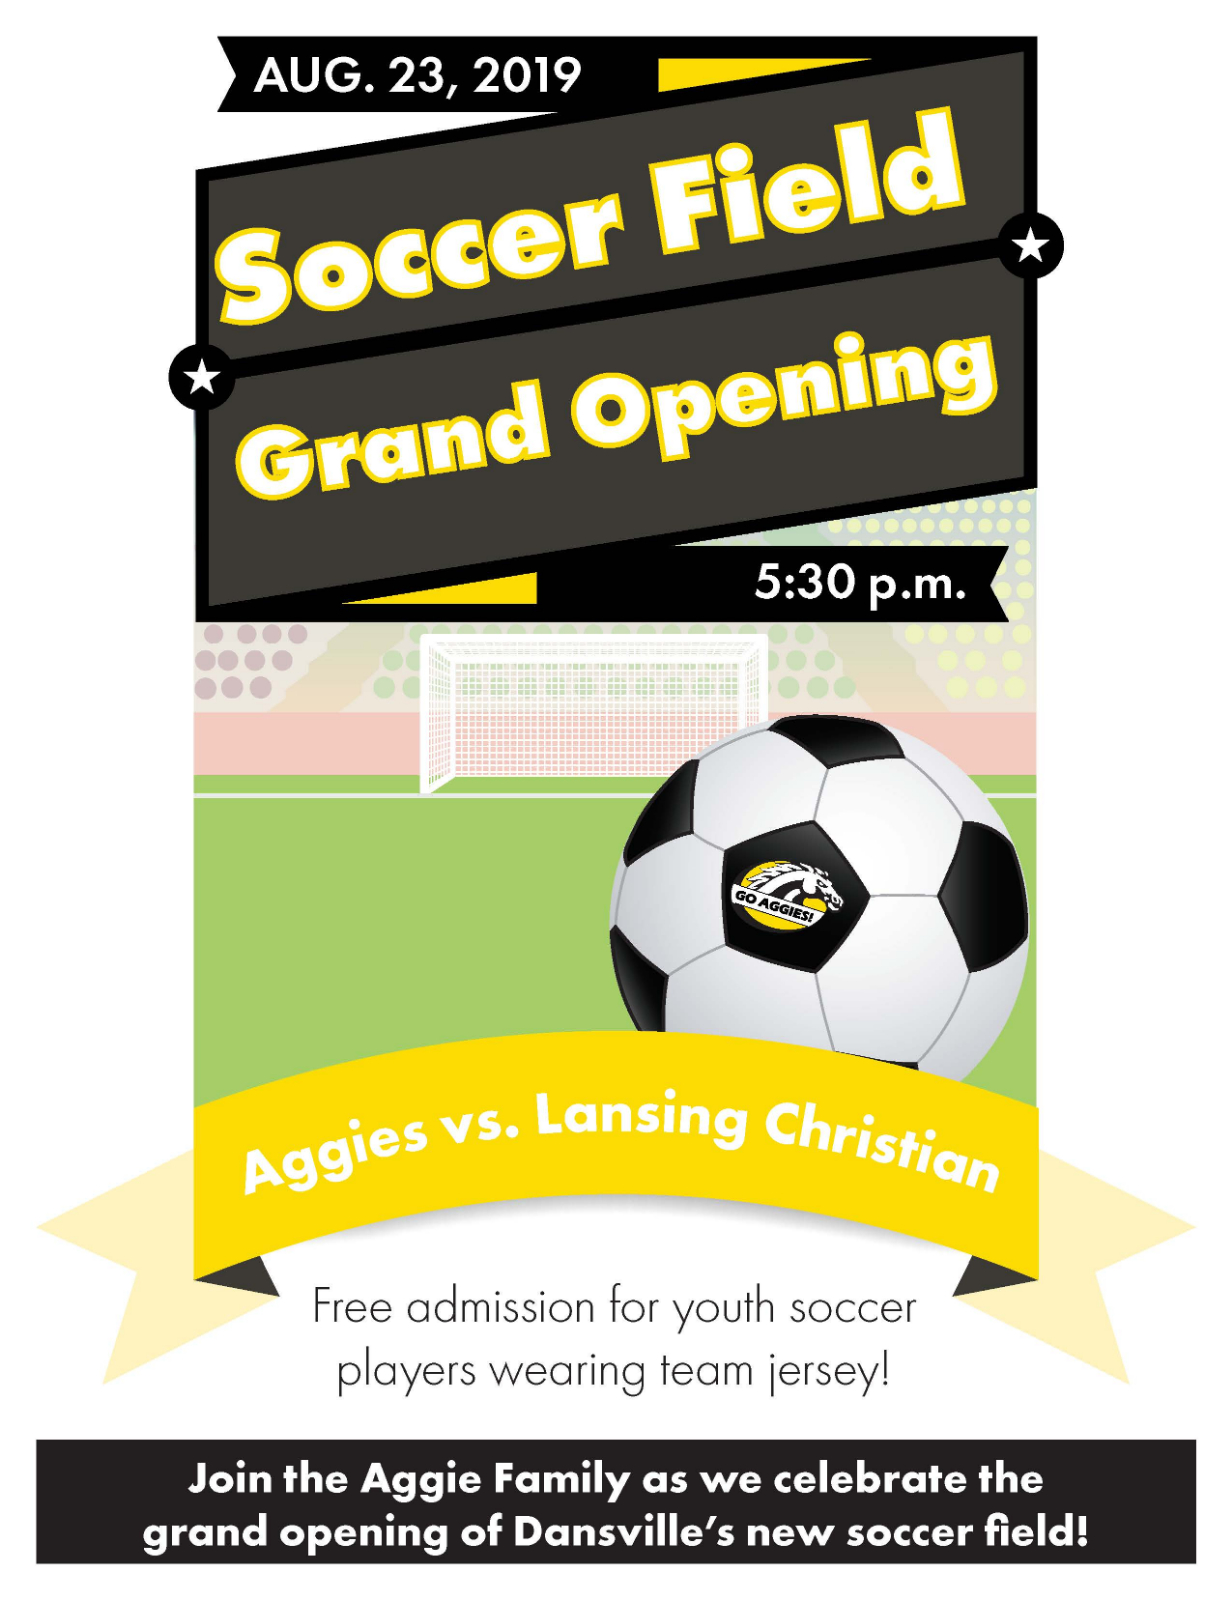 Soccer Field Grand Opening Scheduled for August 23